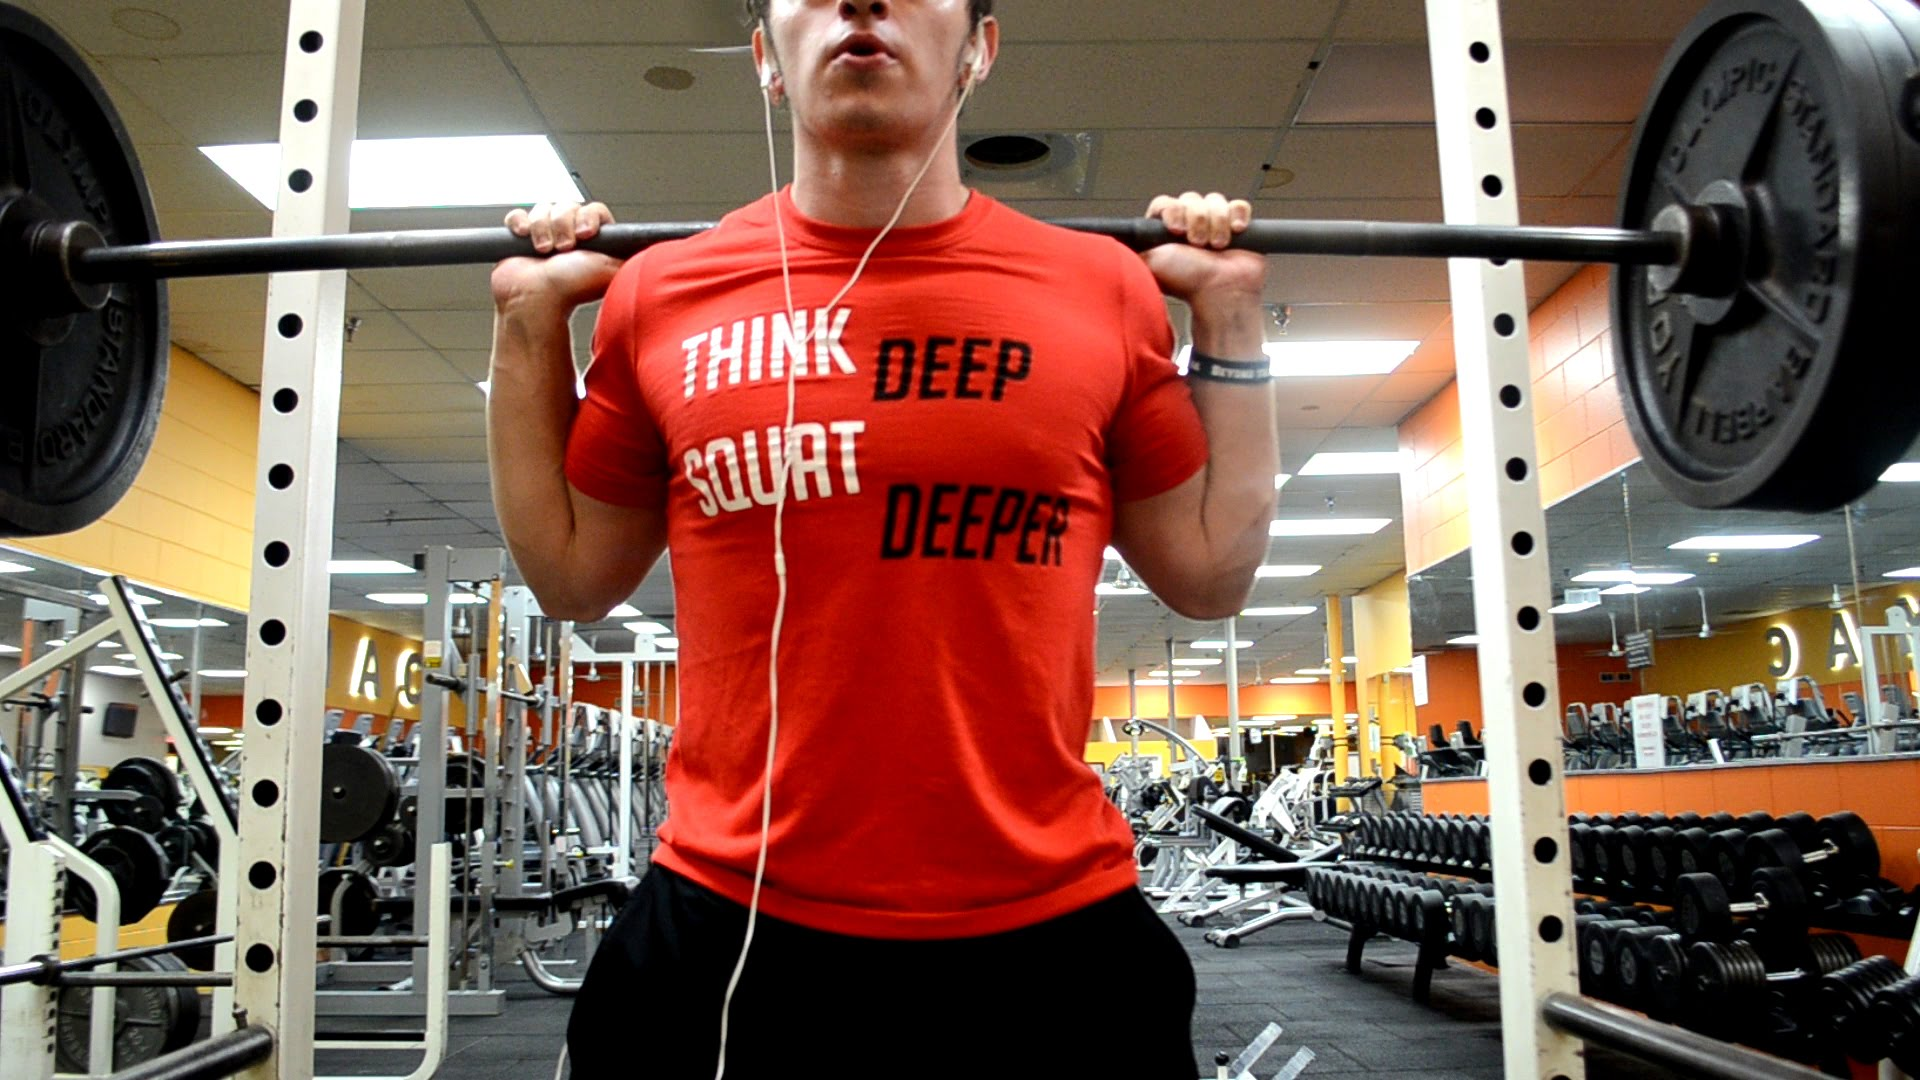 14 - Think Deep, Squat Deep